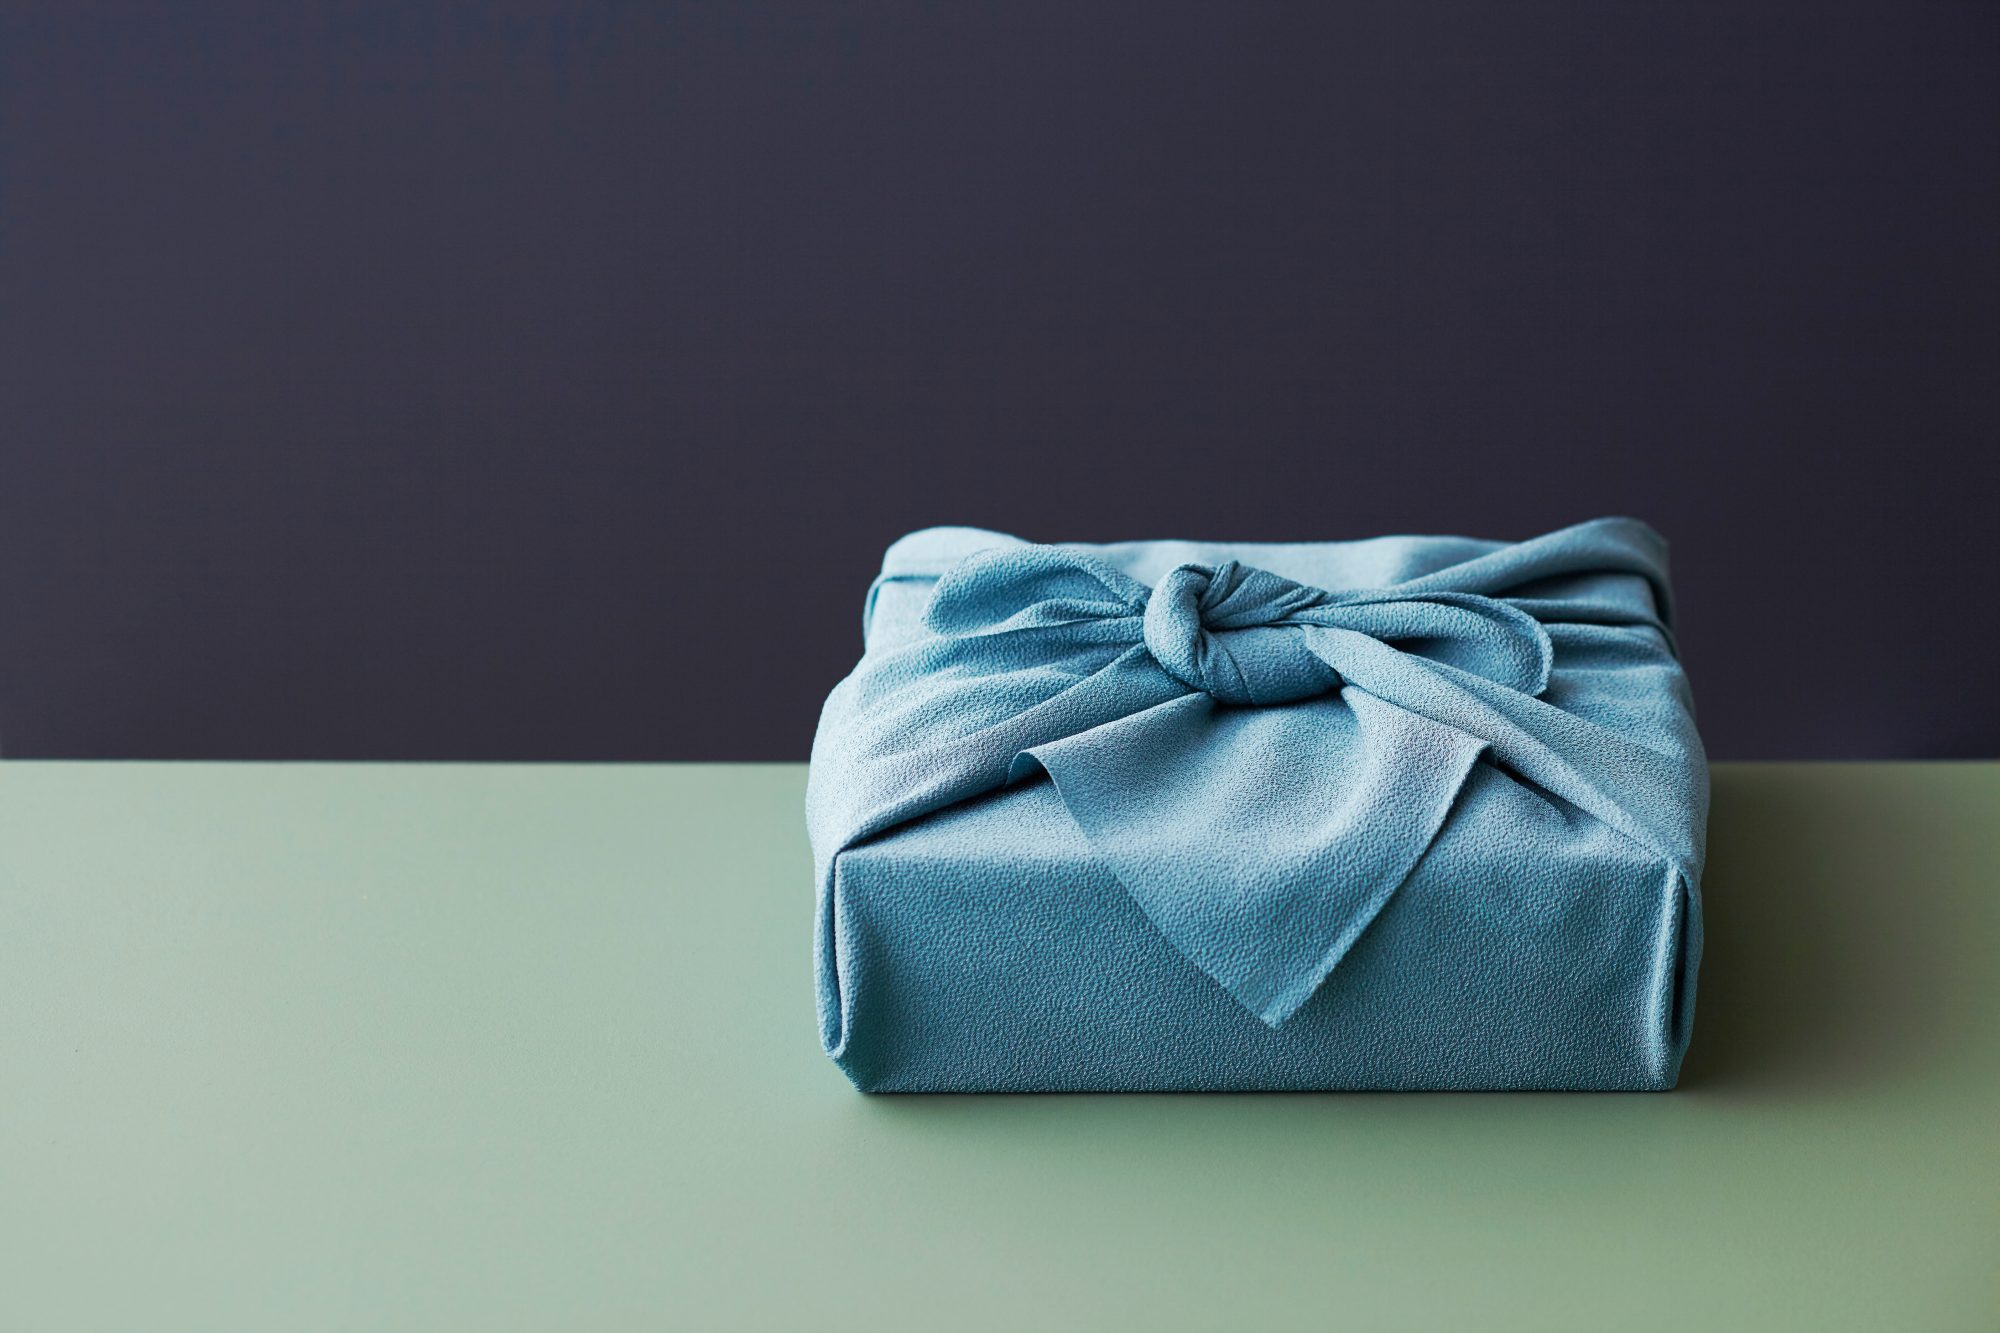 Wrapped present -- Wedding Gift Registry